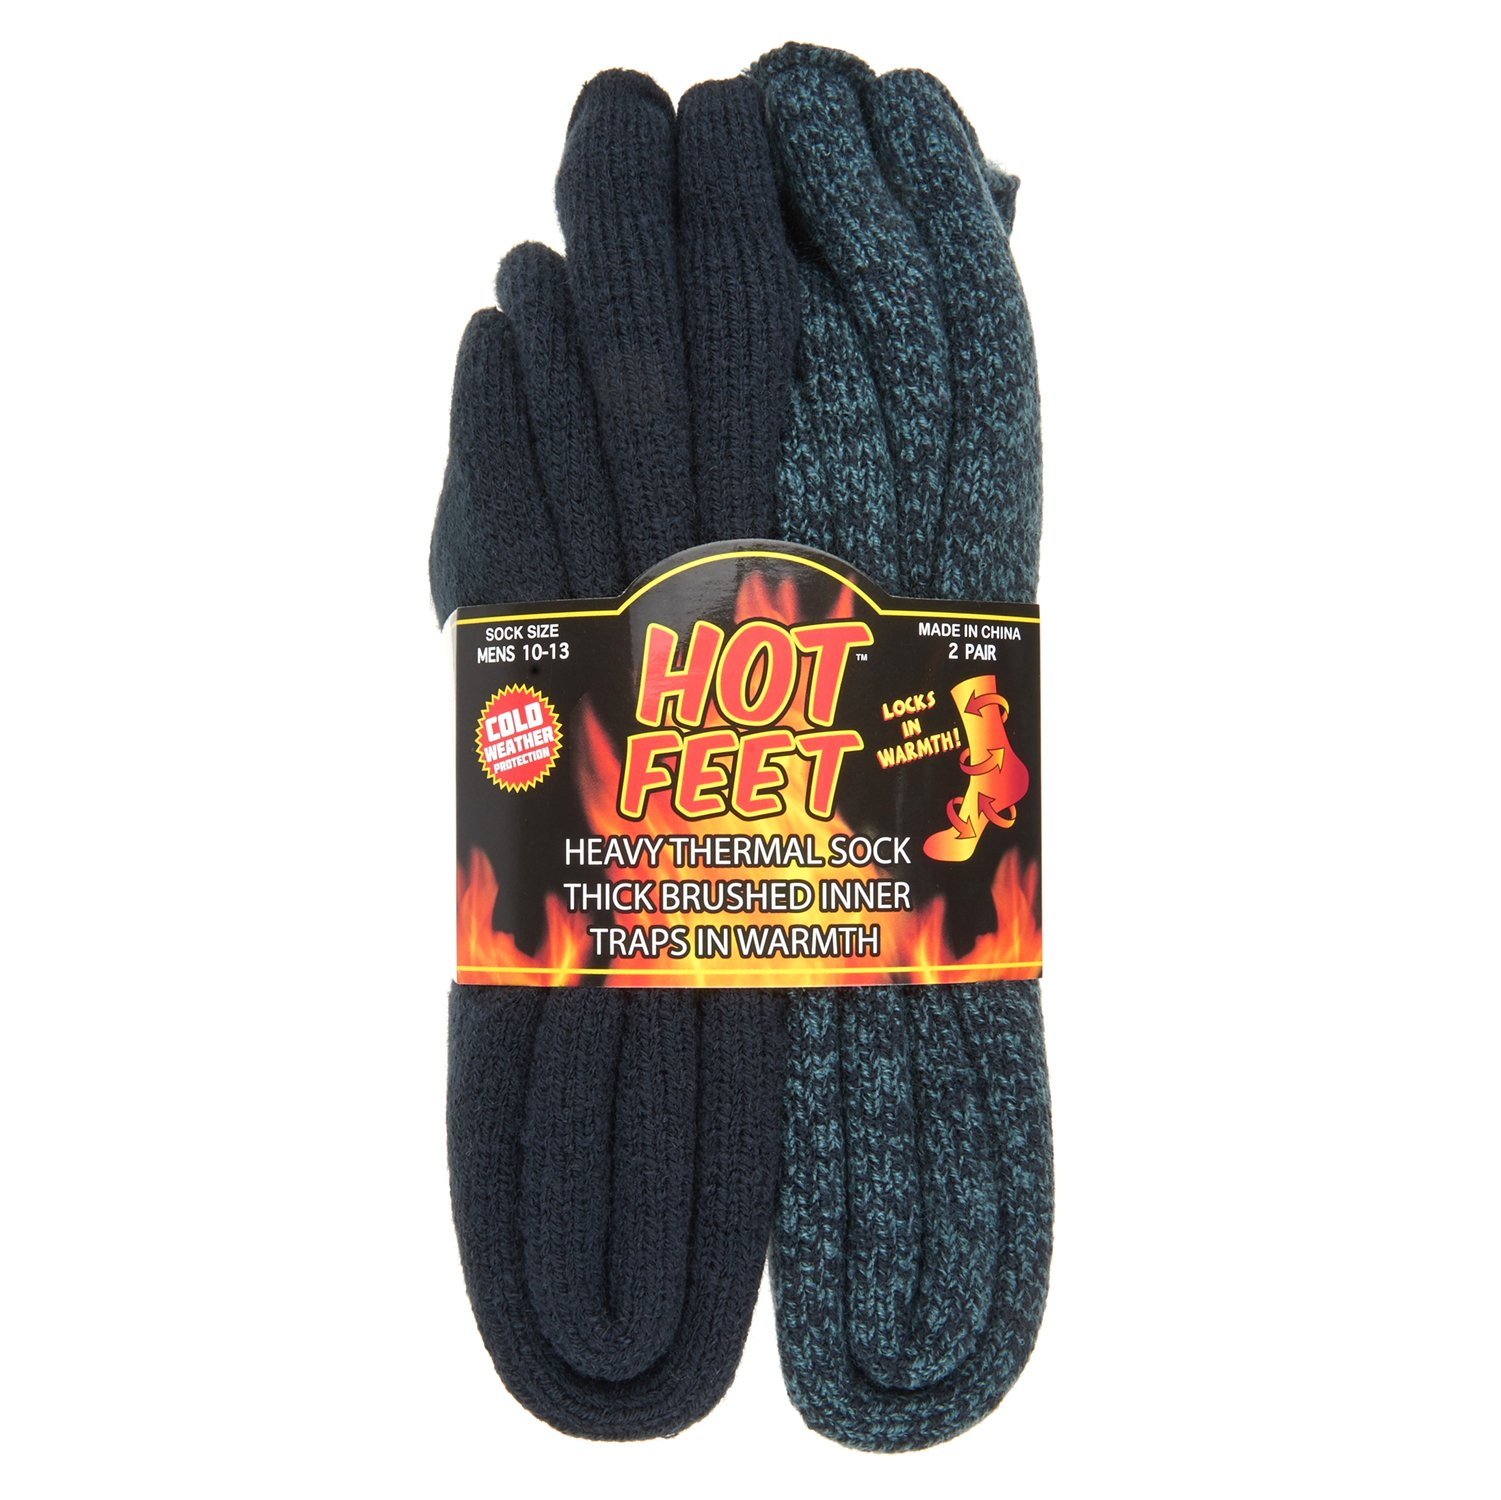 12.5 Heated Thermal Socks for Men Patterned Crew Socks Hot Feet USA Men/'s Sock Sizes 6 Warm Hot Feet Cozy